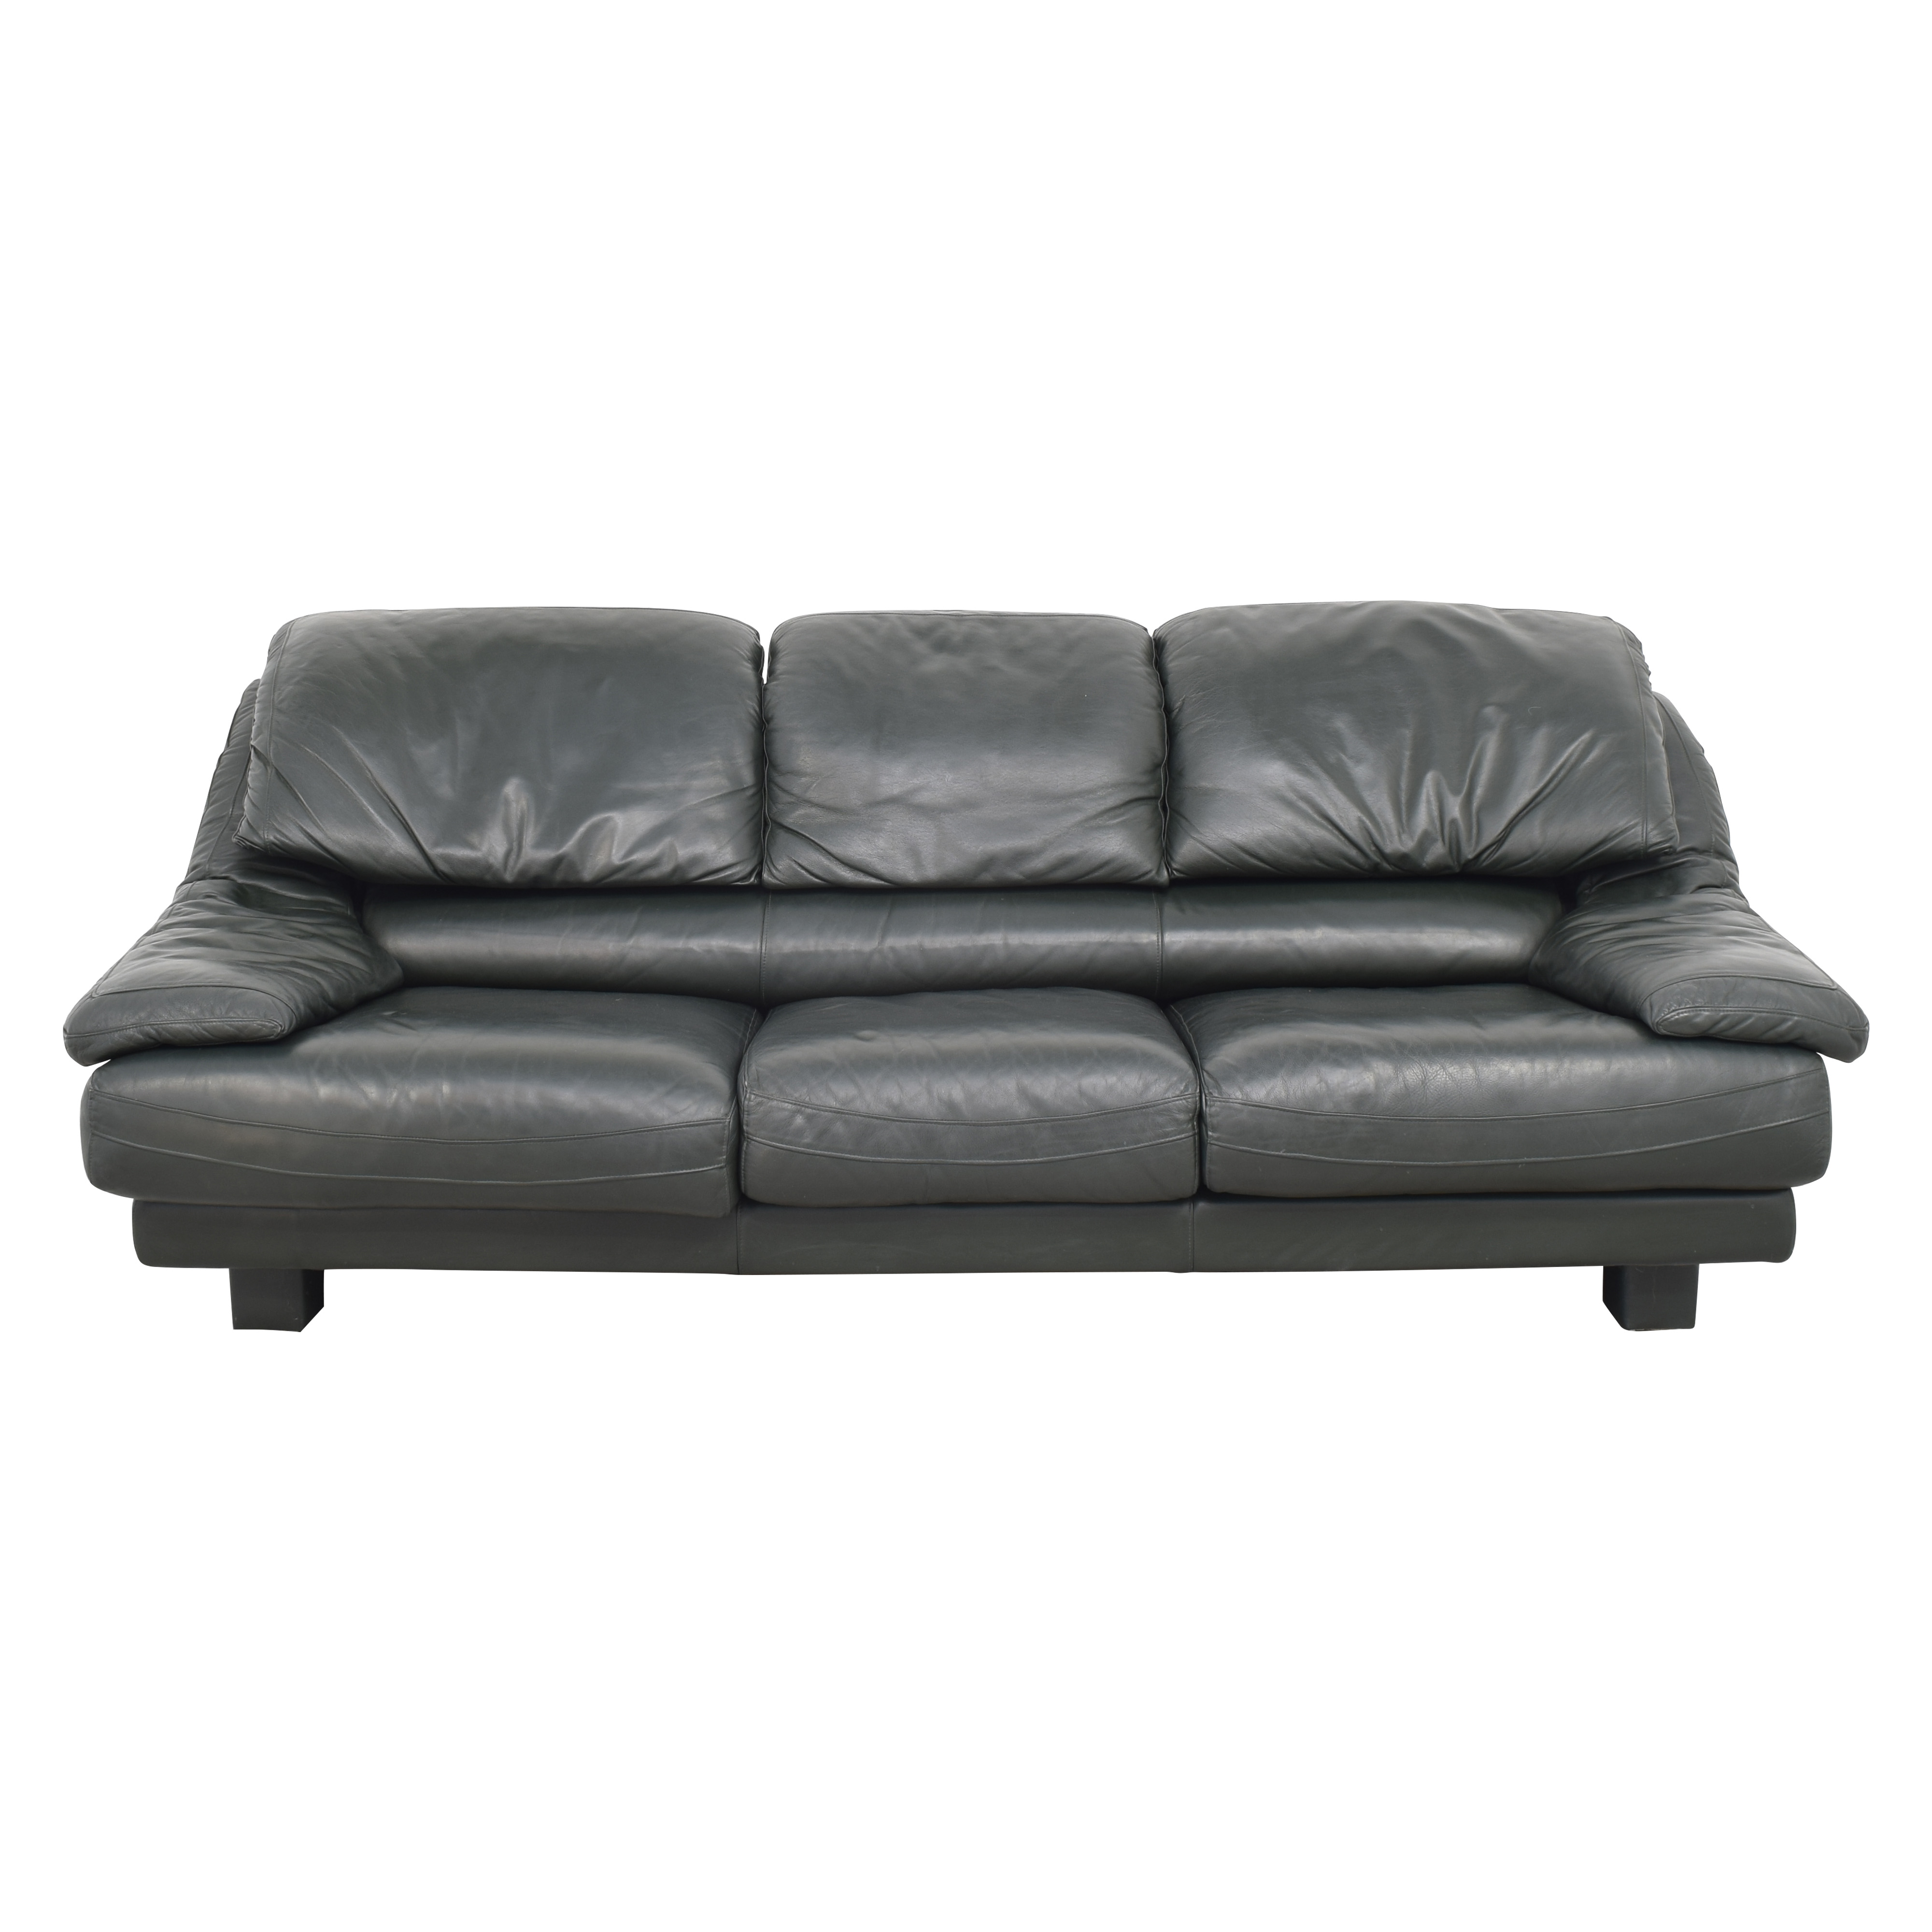 Natuzzi Natuzzi Padded Arm Sofa for sale